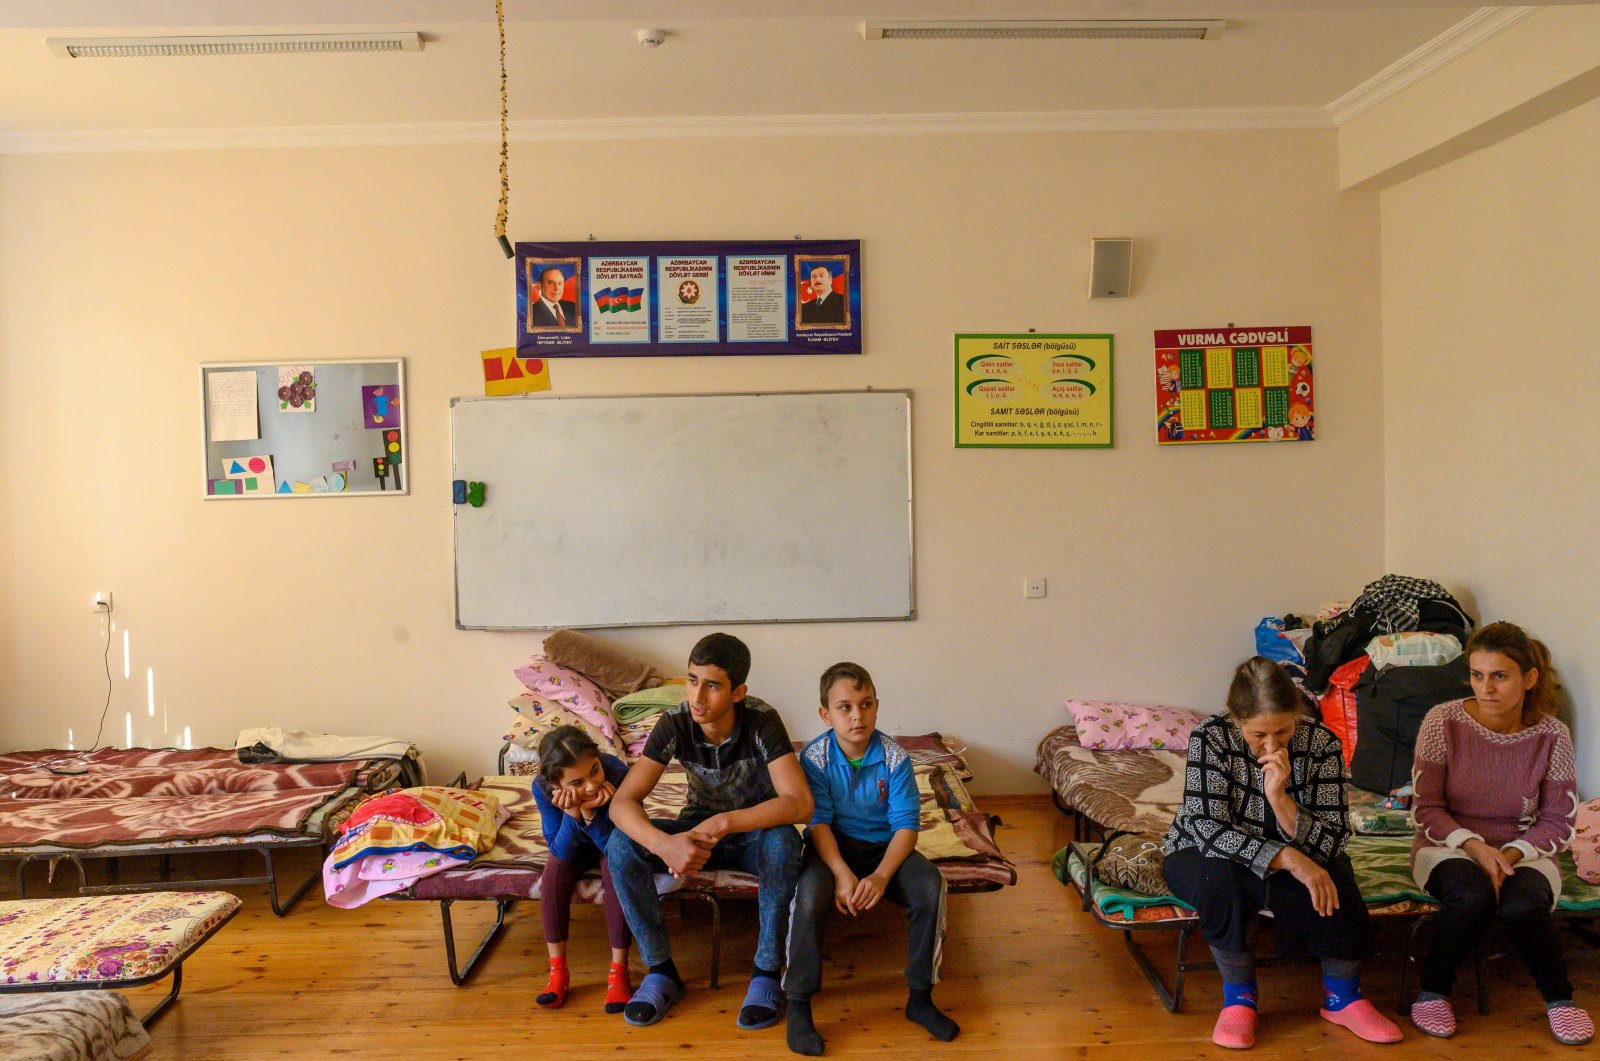 A refugee family who fled Tartar due to the ongoing military conflict between Armenia and Azerbaijan over the Armenian-occupied region of Nagorno-Karabakh is seen in a classroom of a secondary school in the town of Barda, Azerbaijan, Oct. 12, 2020. (AFP Photo)